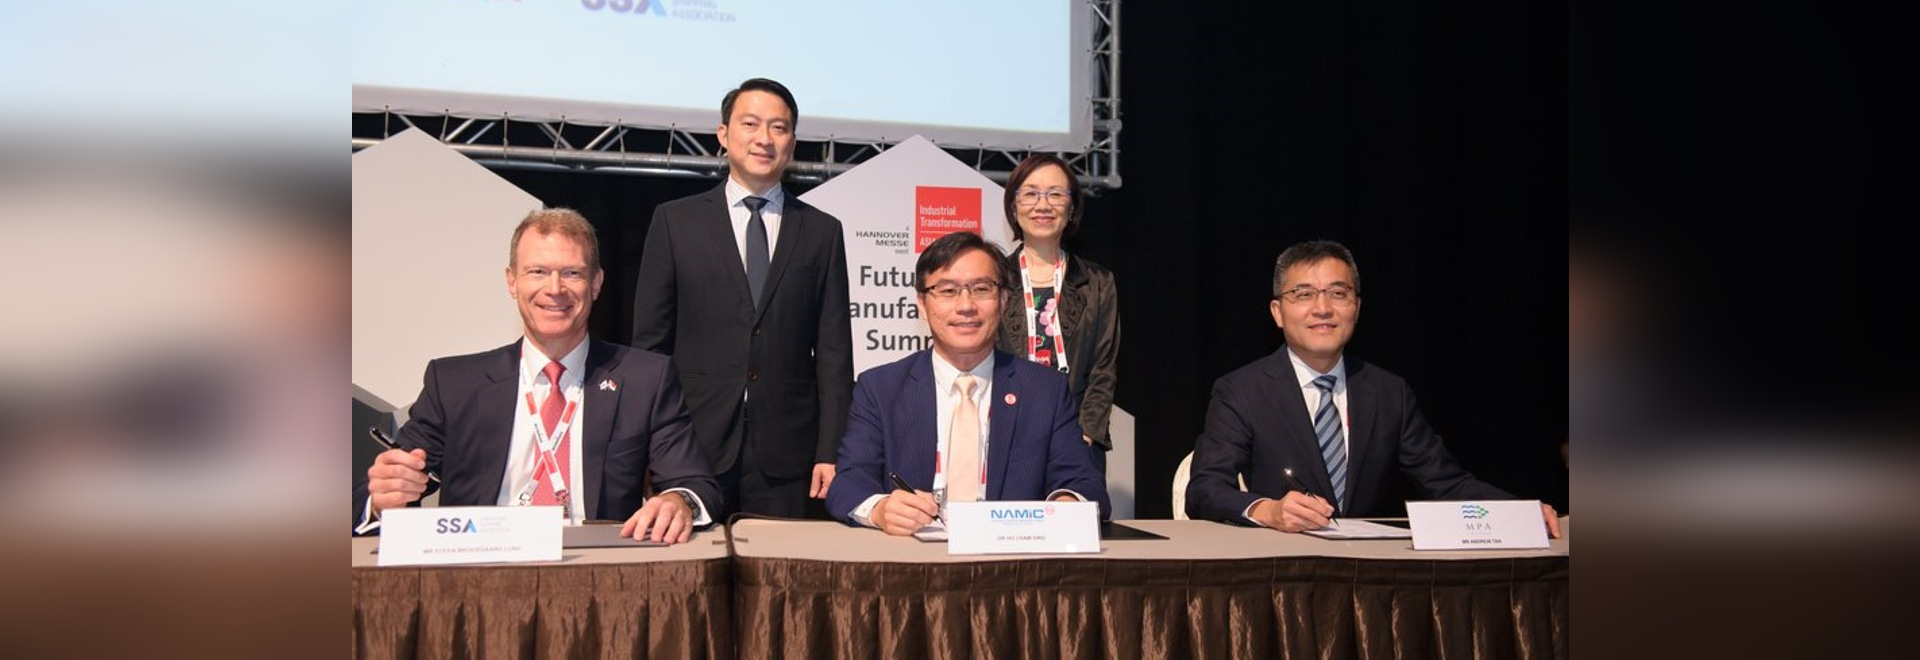 The MoU signing ceremony. (L-R) Steen Brodsgaard Lund, SSA Councillor and Chairman of SSA Technical Committee, Lam Pin Min, Senior Minister of State, Ministry of Transport and Ministry of Health, H...